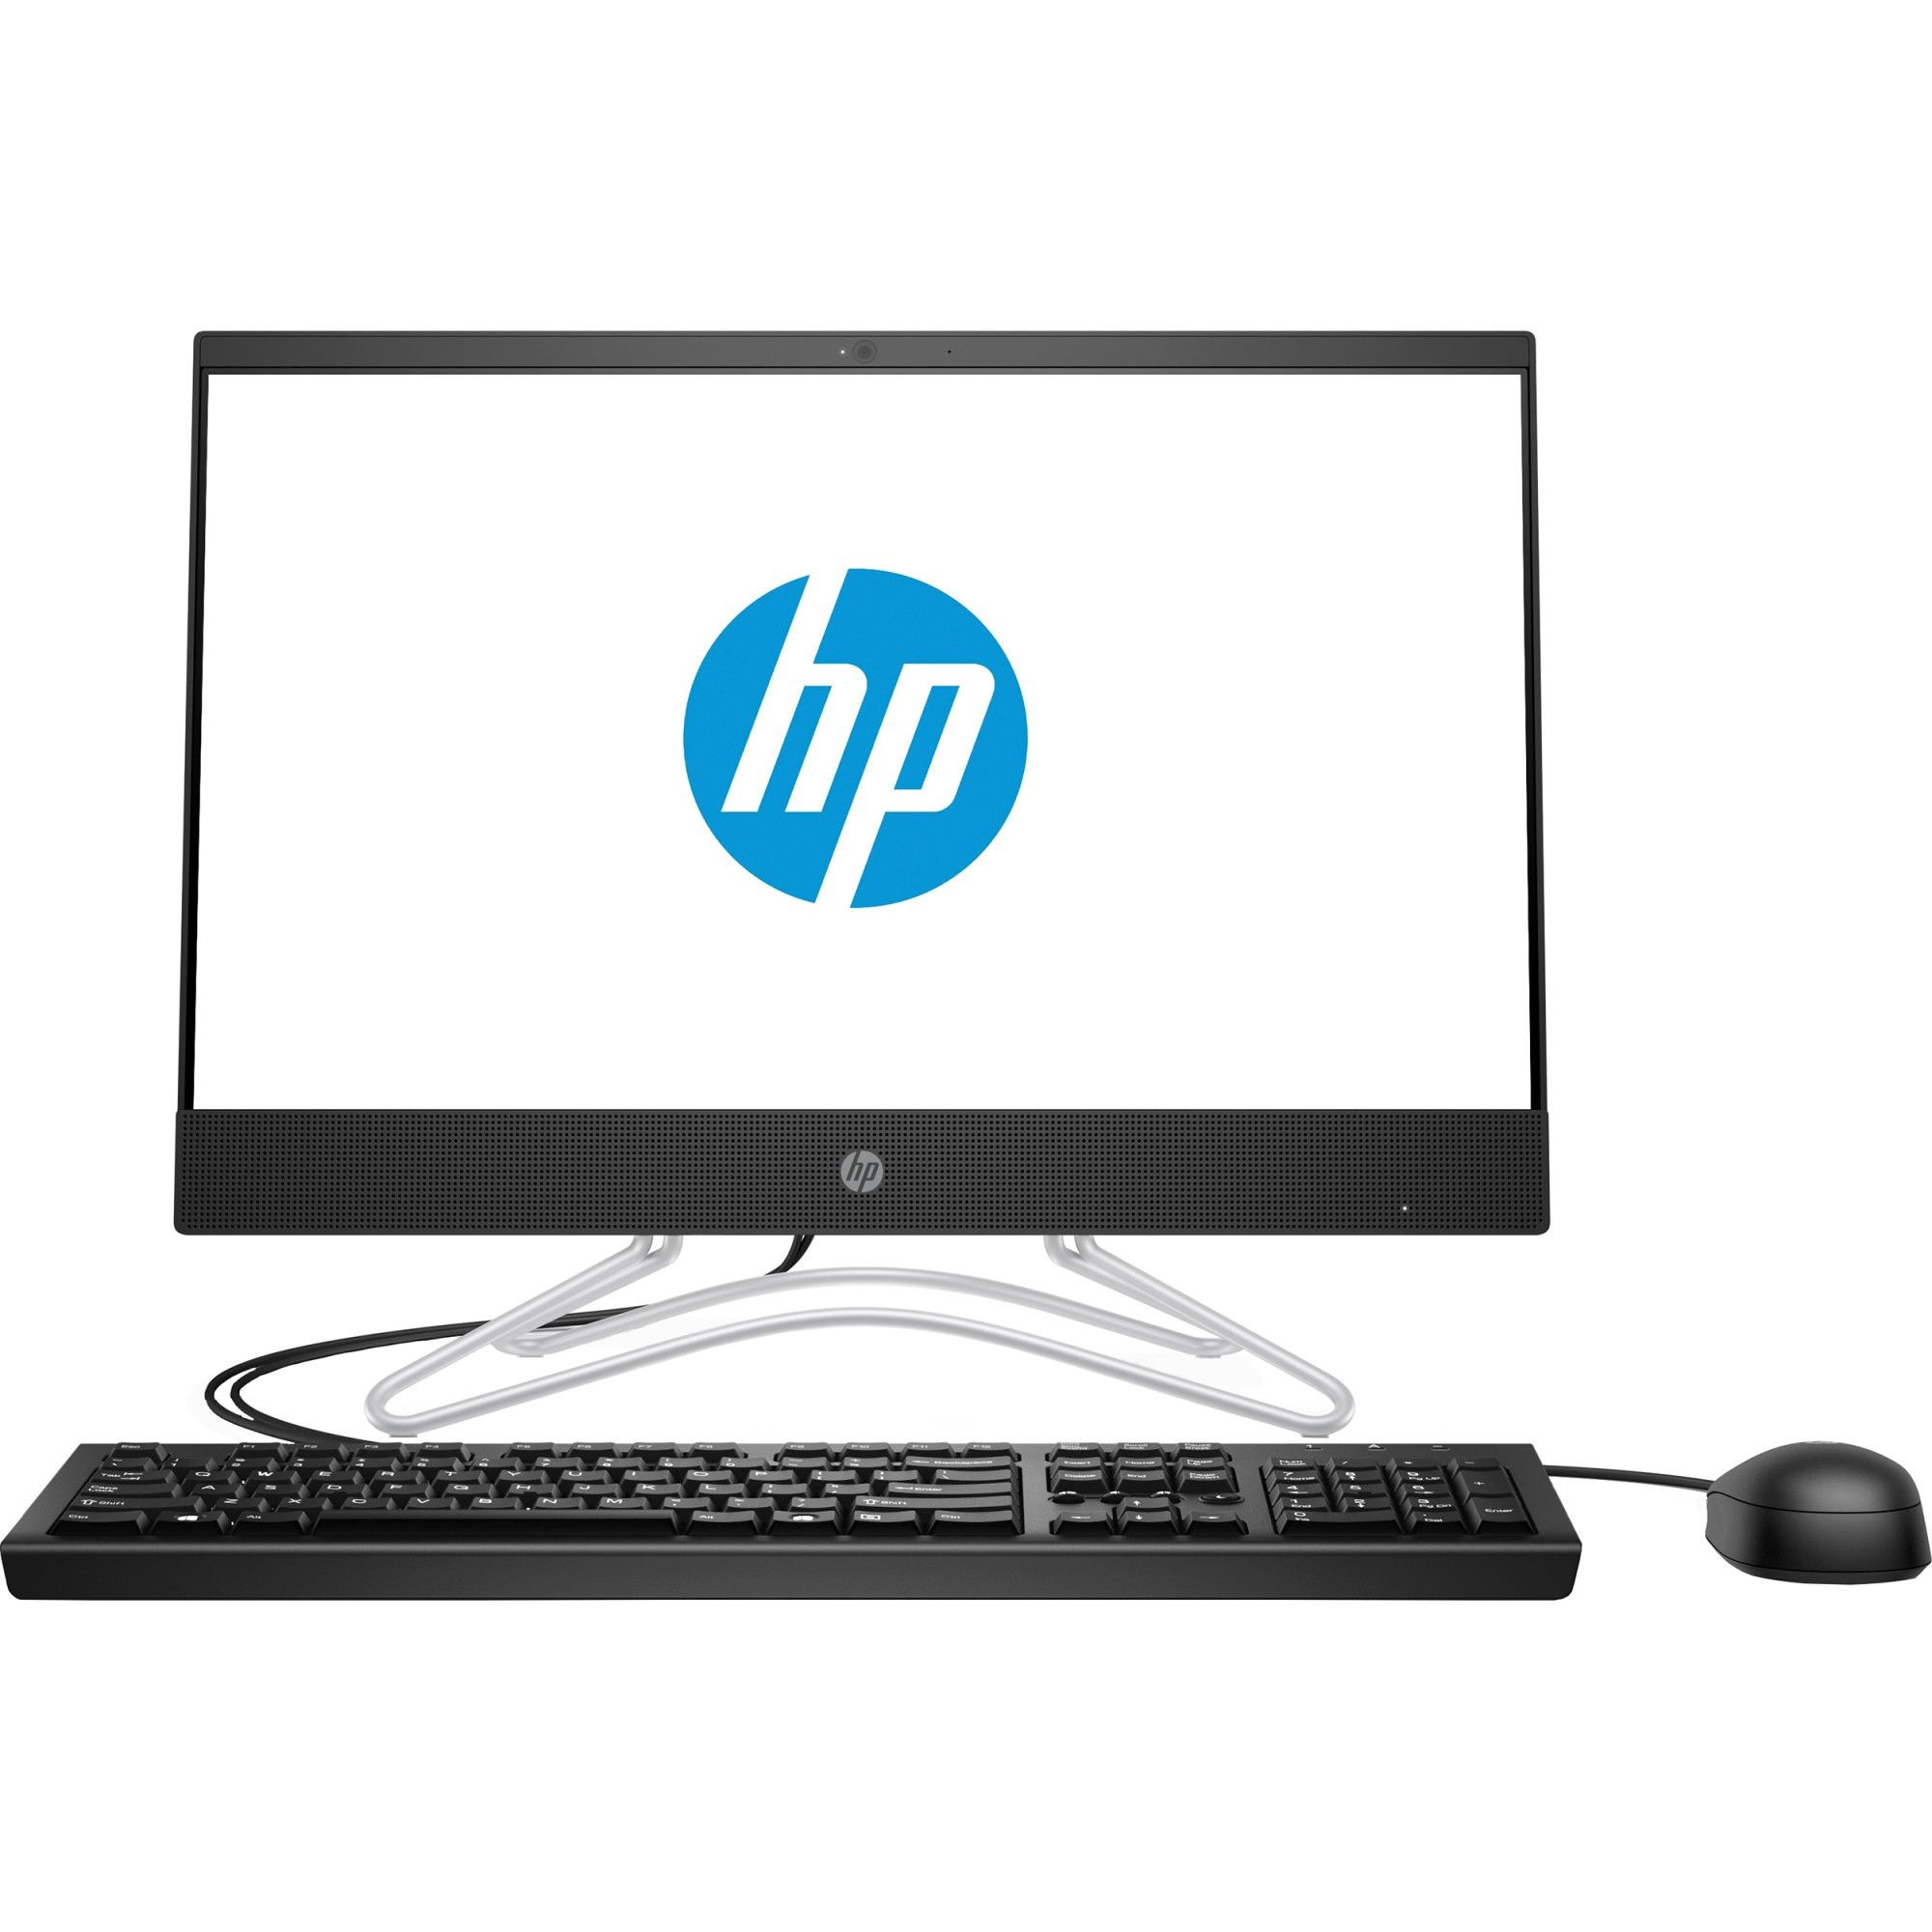 "Sistem All-in-One HP 200 G3 cu procesor Intel® Core™ i5-8250U pana la 3.4GHz, Kaby Lake, 21.5"", Full HD, 4GB DDR4, 1TB HDD, DVD-RW, Intel® UHD Graphics 620, Free DOS, Black"